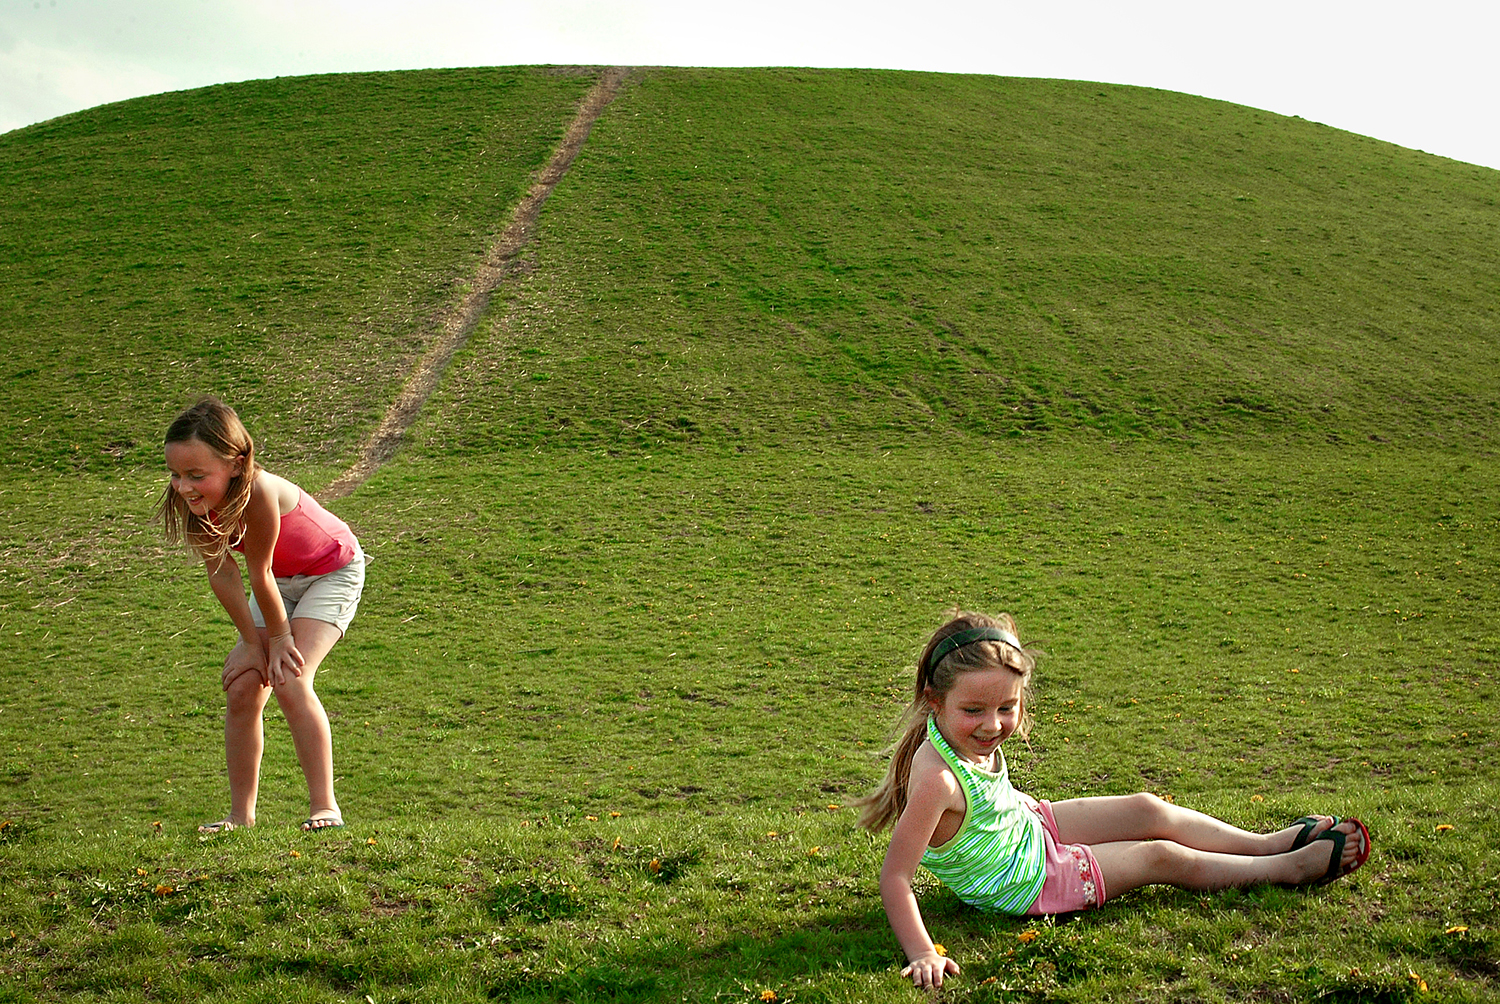 """Eight-year-old Lauren Harney catches her breath after conquering the sledding hill and rolling back down with her sister Sidney, 4, at Centennial Park, Friday, April, 14, 2006. The two girls visited the park with parents Tim and Carla Harney, who both took off of work to spend time with their daughters who are on Spring Break from School. """"We had the bestest day ever,"""" Sidney added. David Albers/The State Journal-Register"""